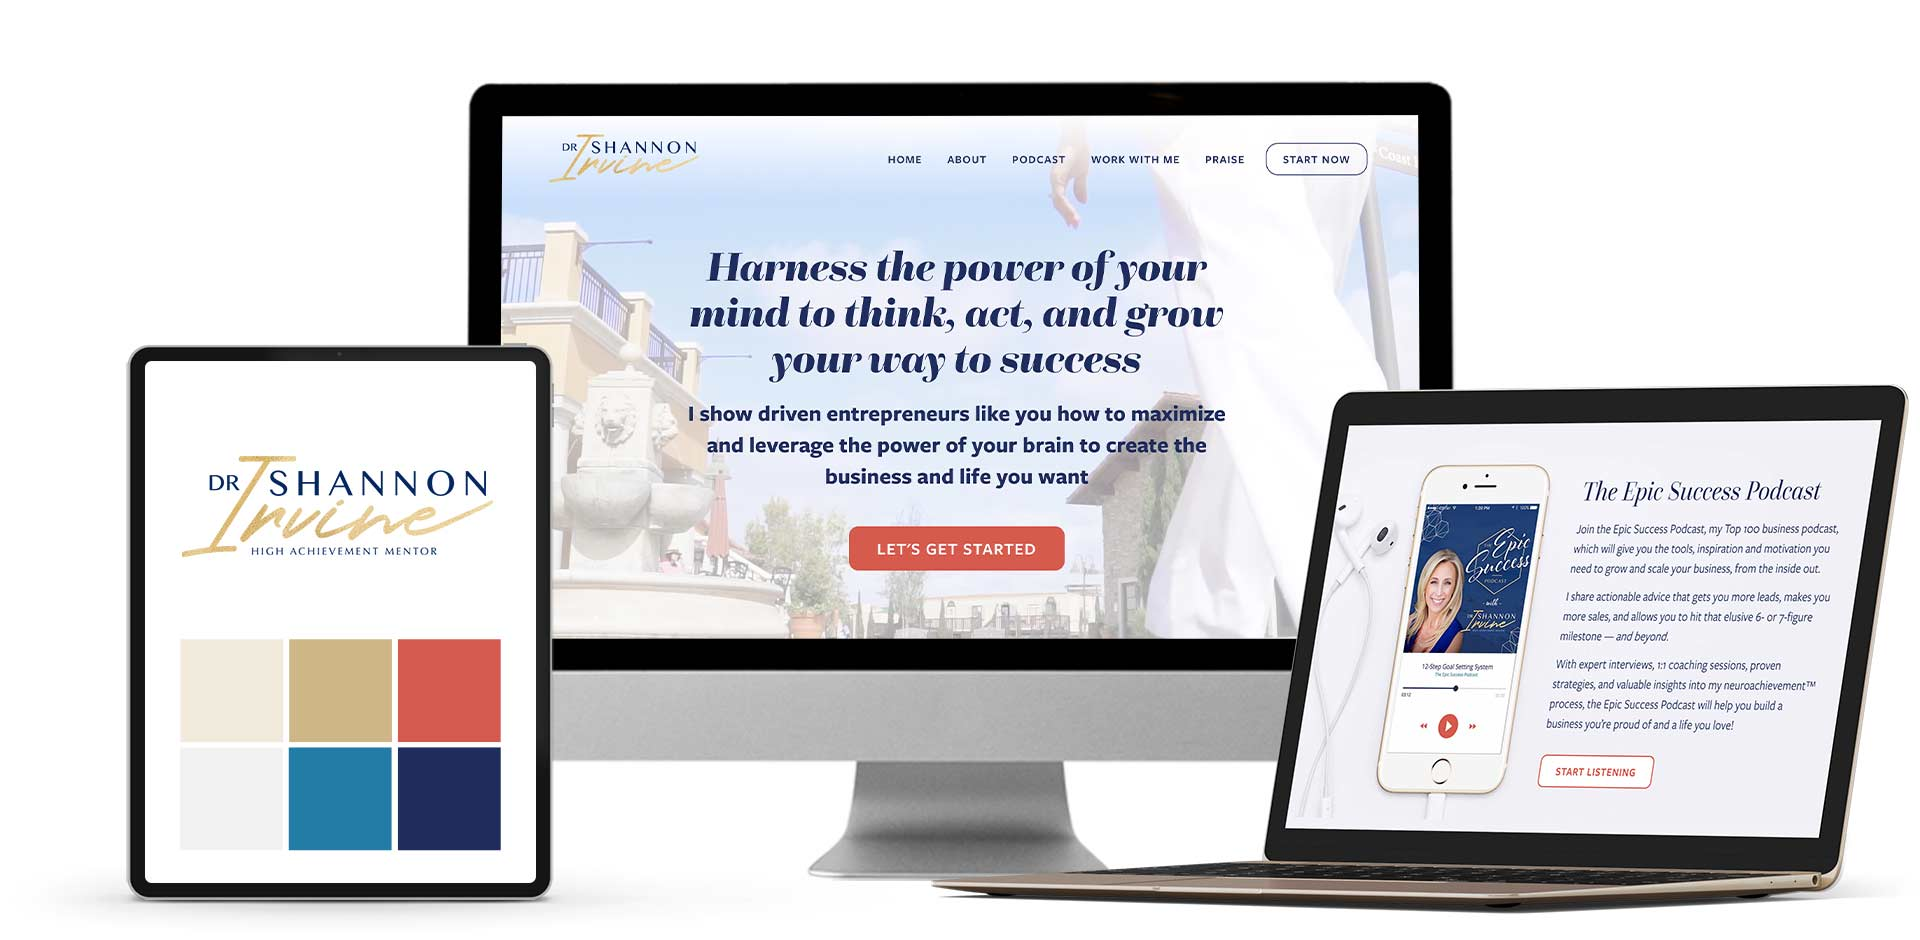 Website redesign, sales pages & social media graphics for mindset coach